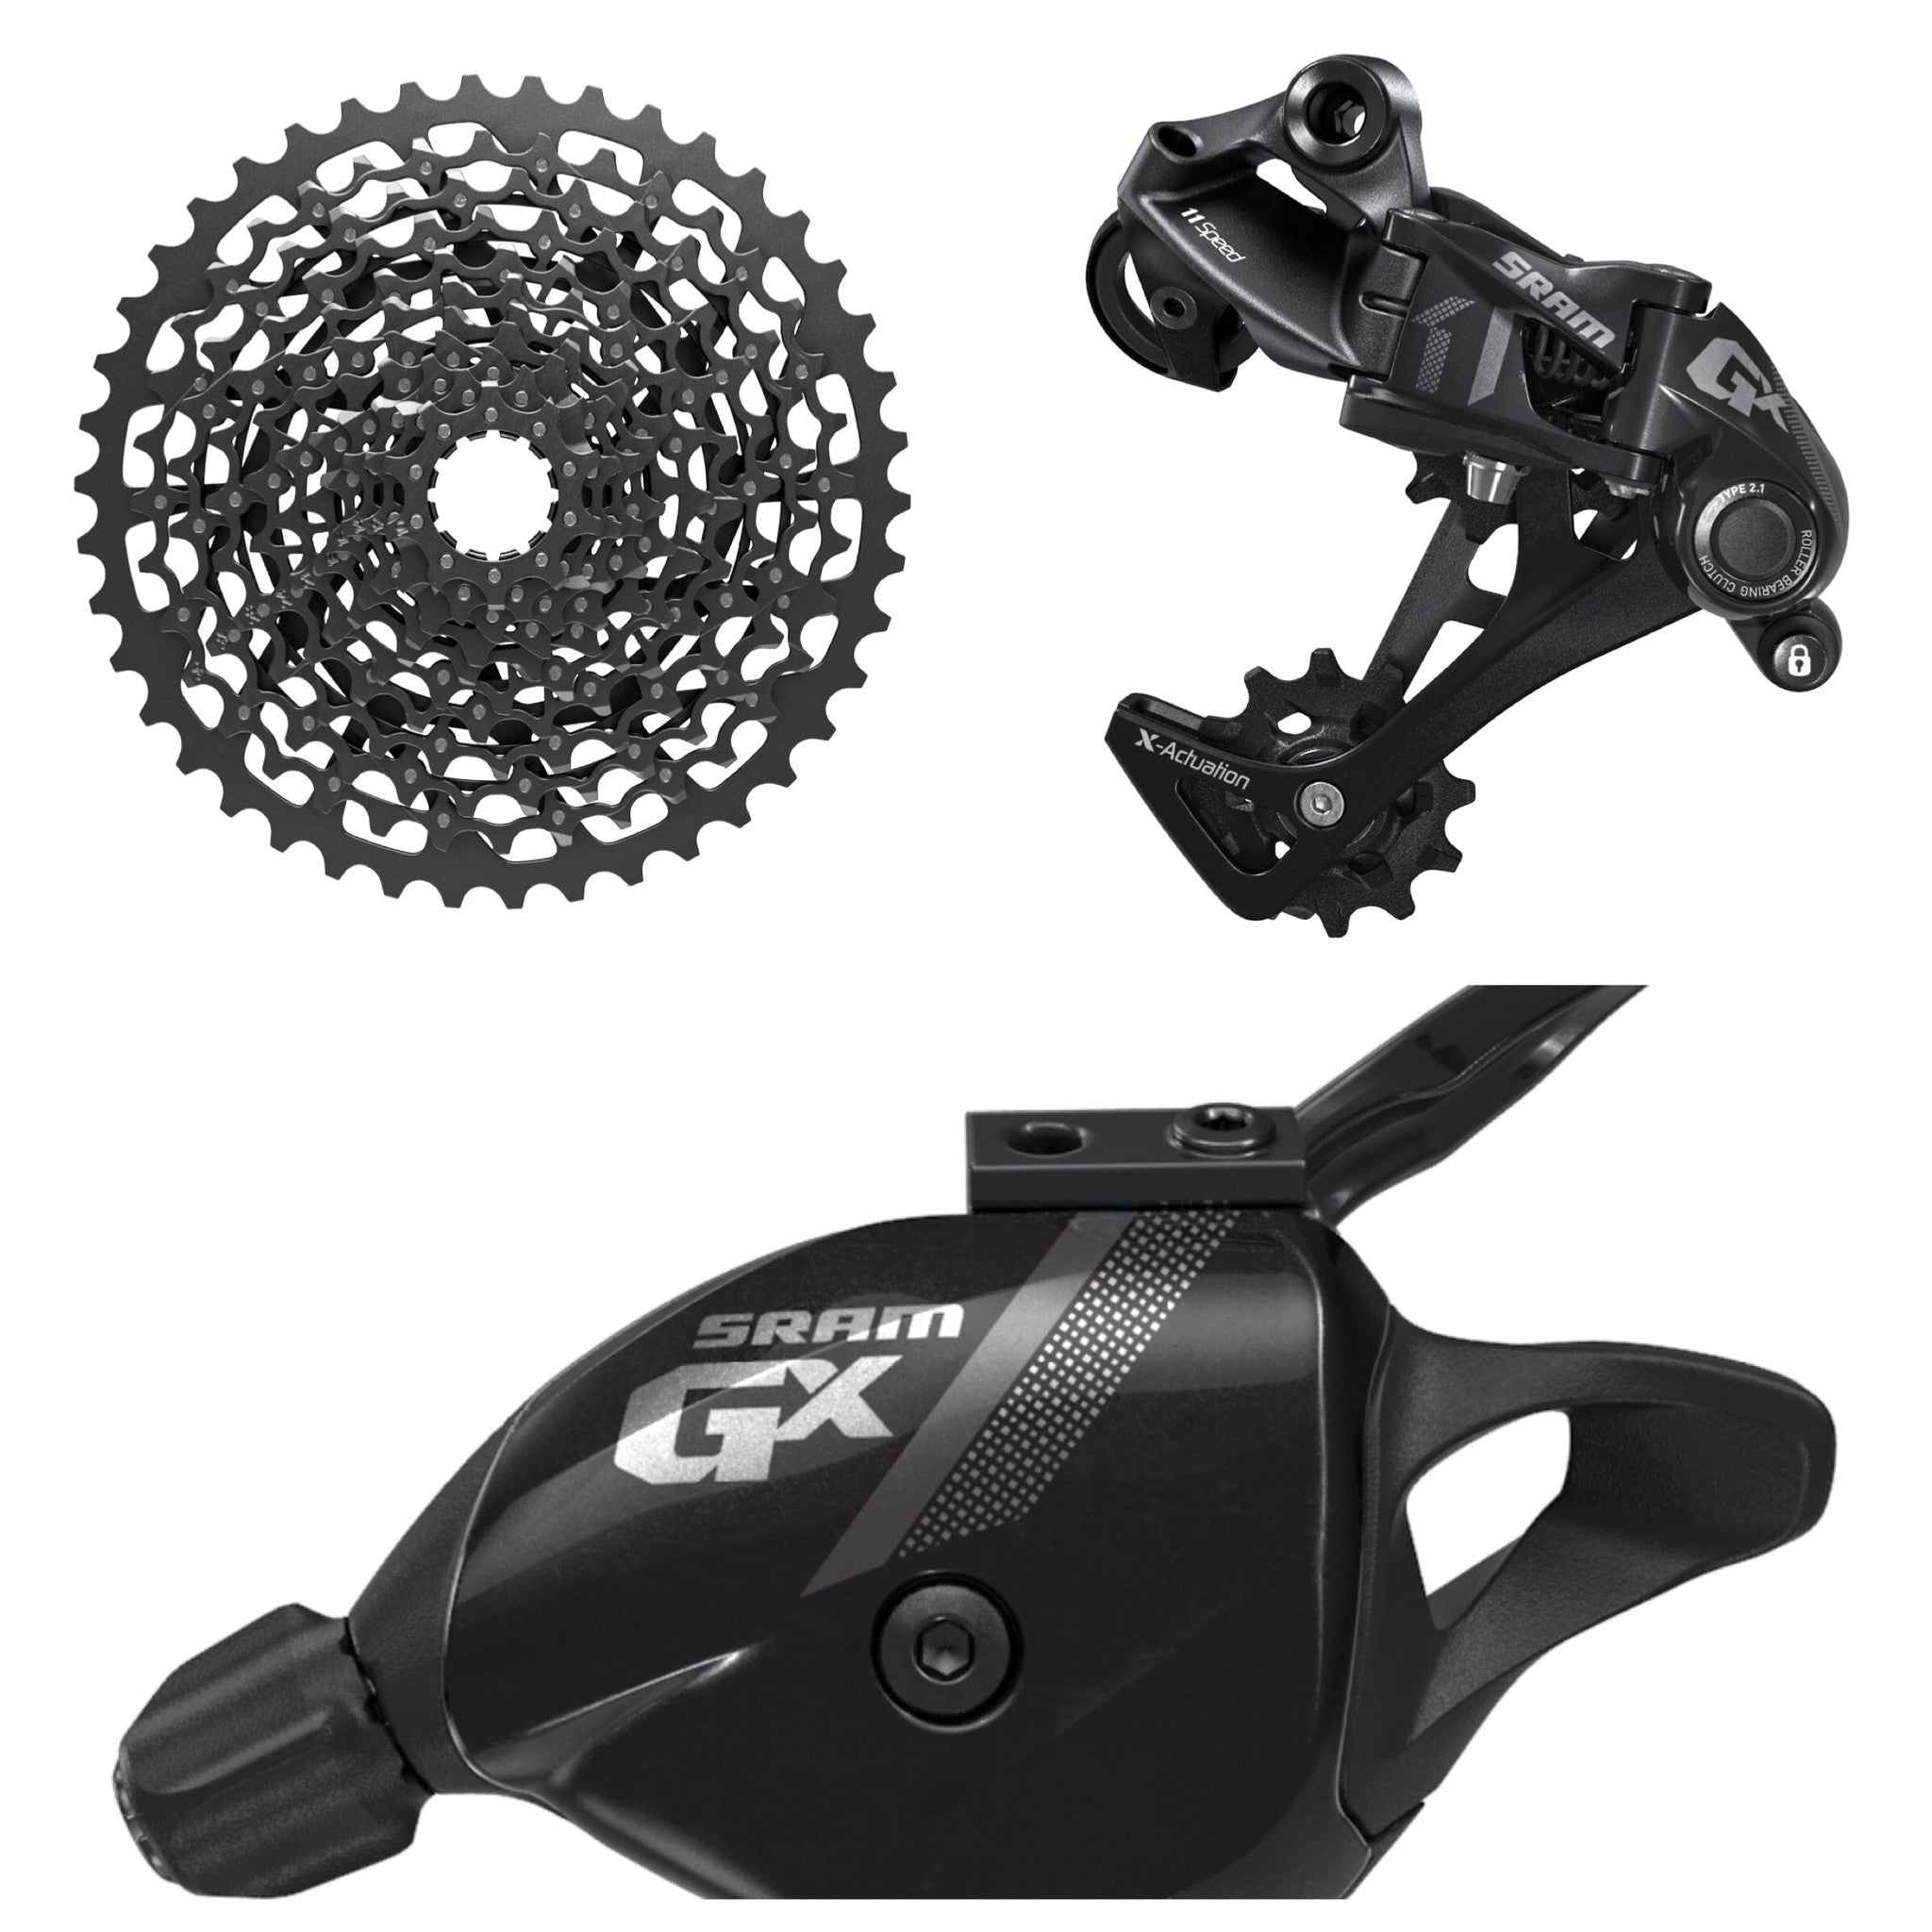 SRAM GX 1x11 11speed upgrade kit